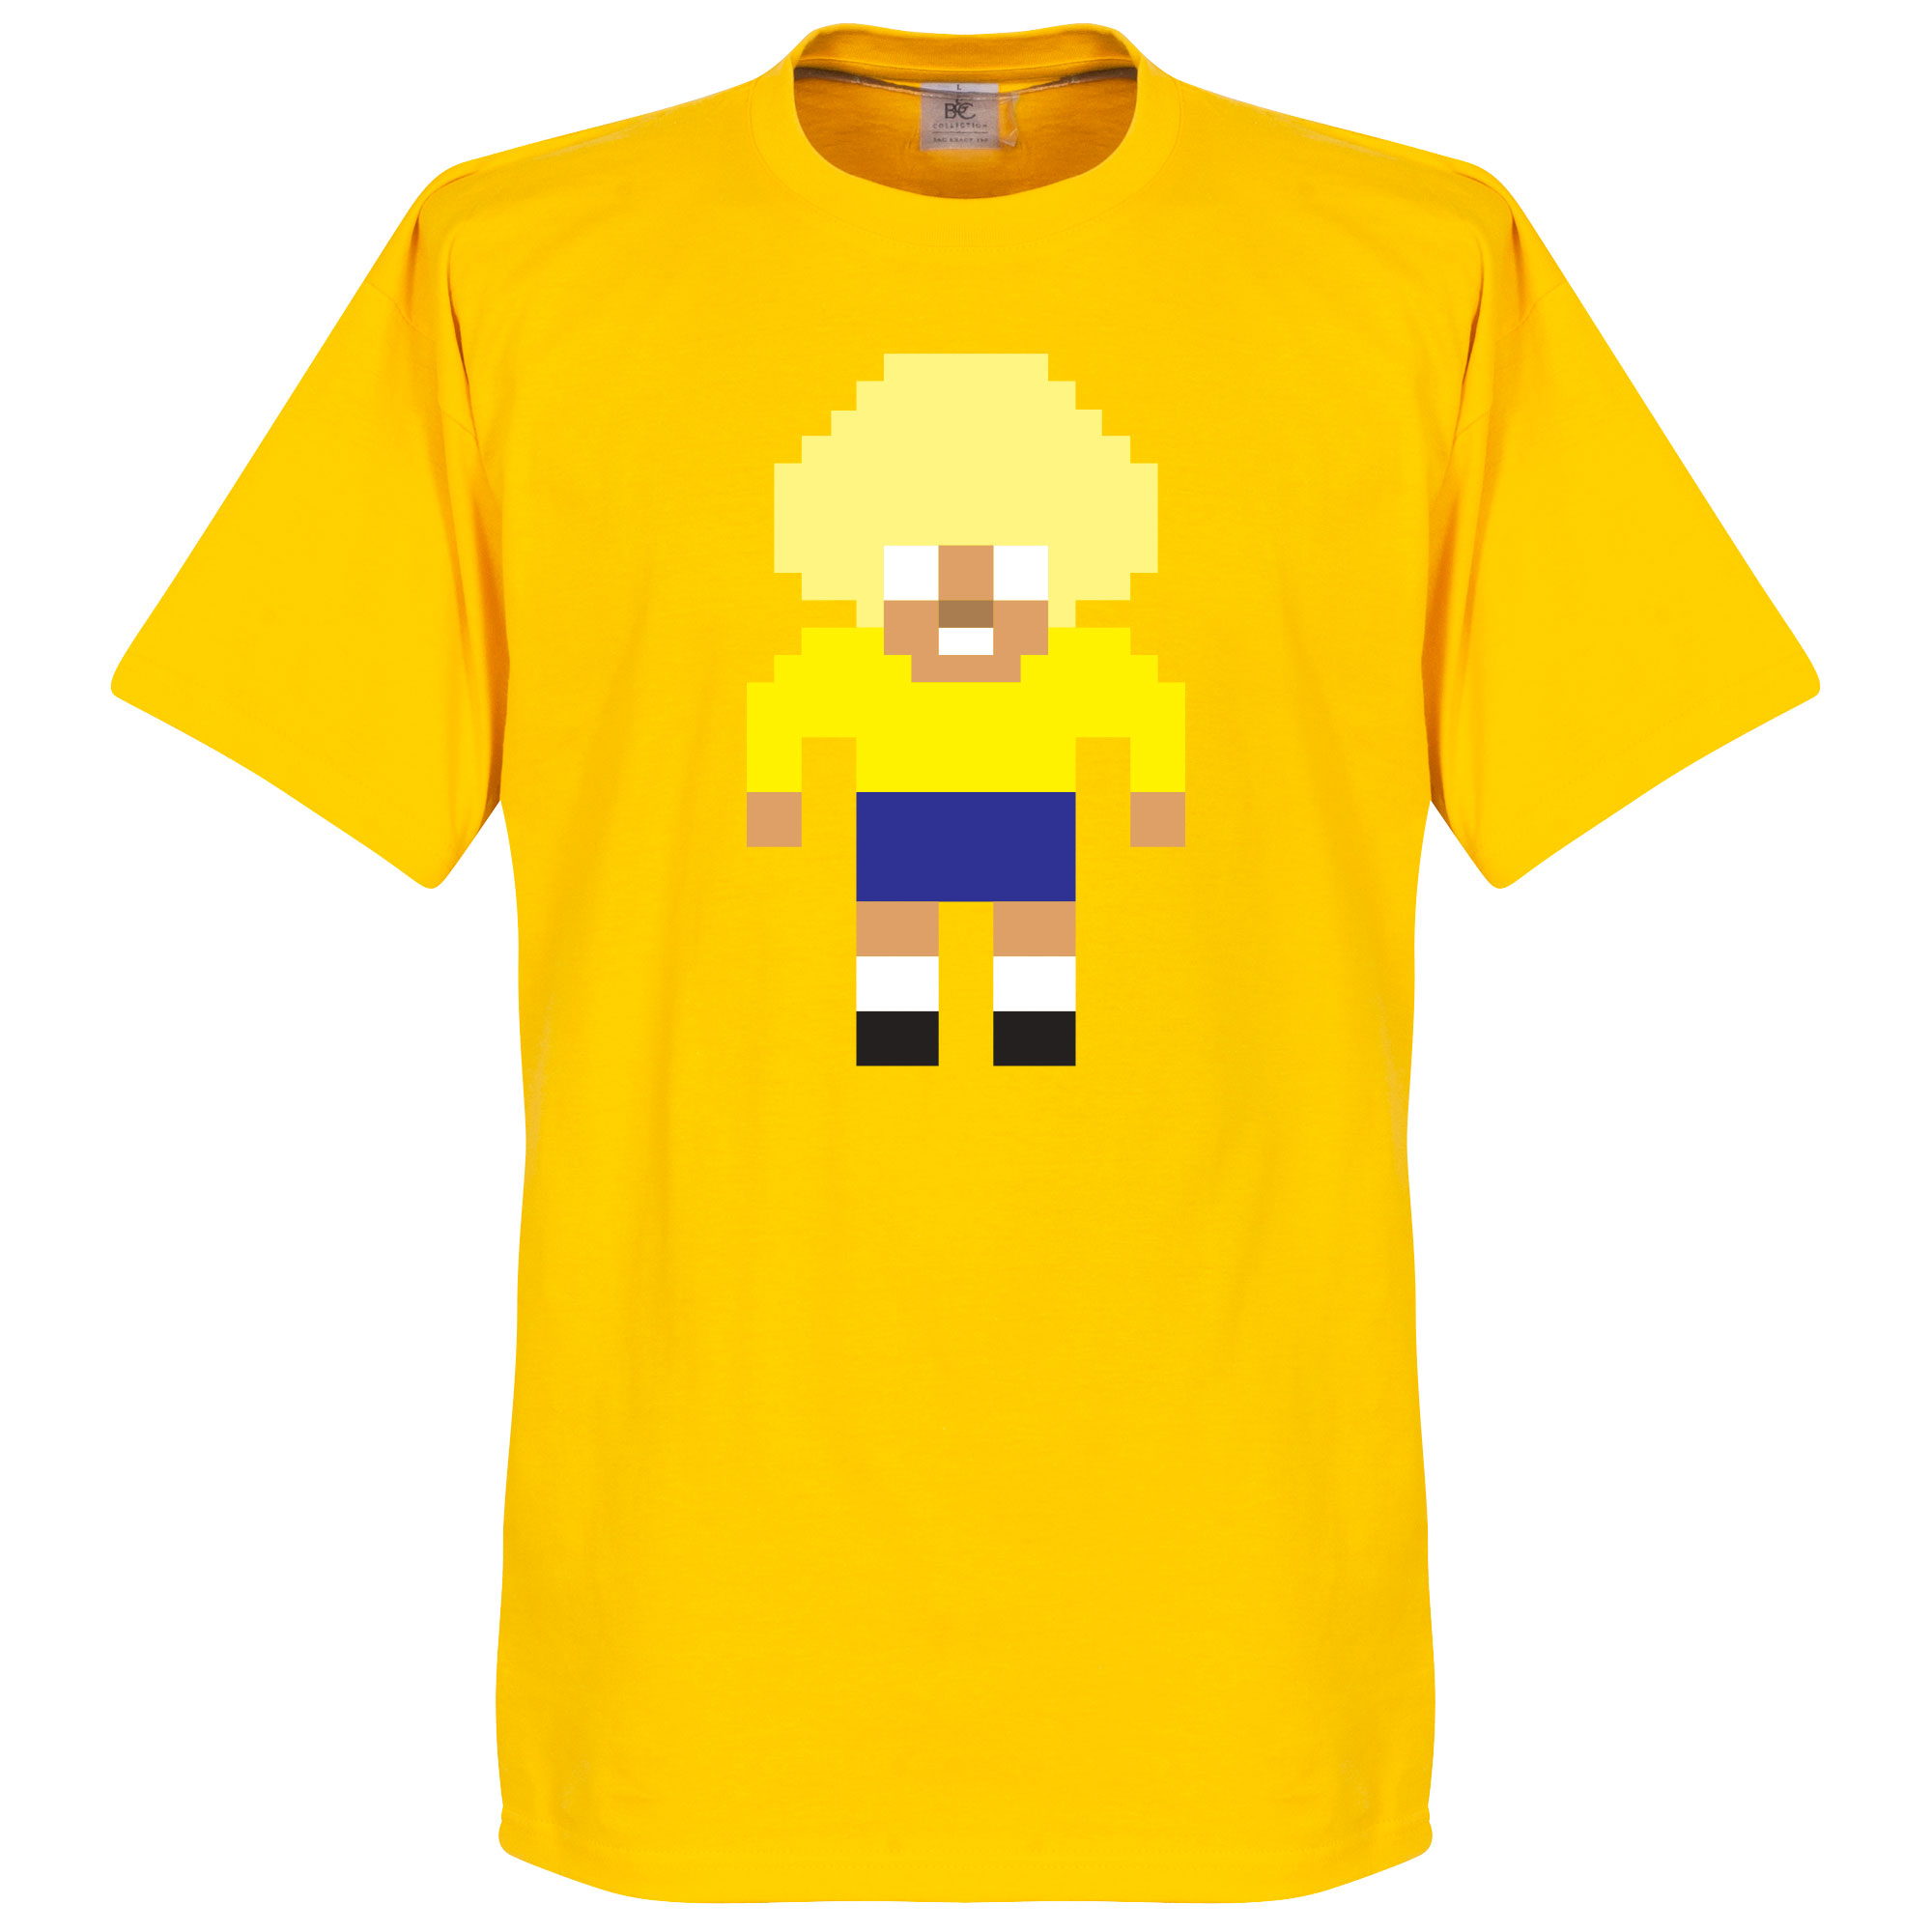 Valderrama Pixel Players Tee - Yellow - XXL